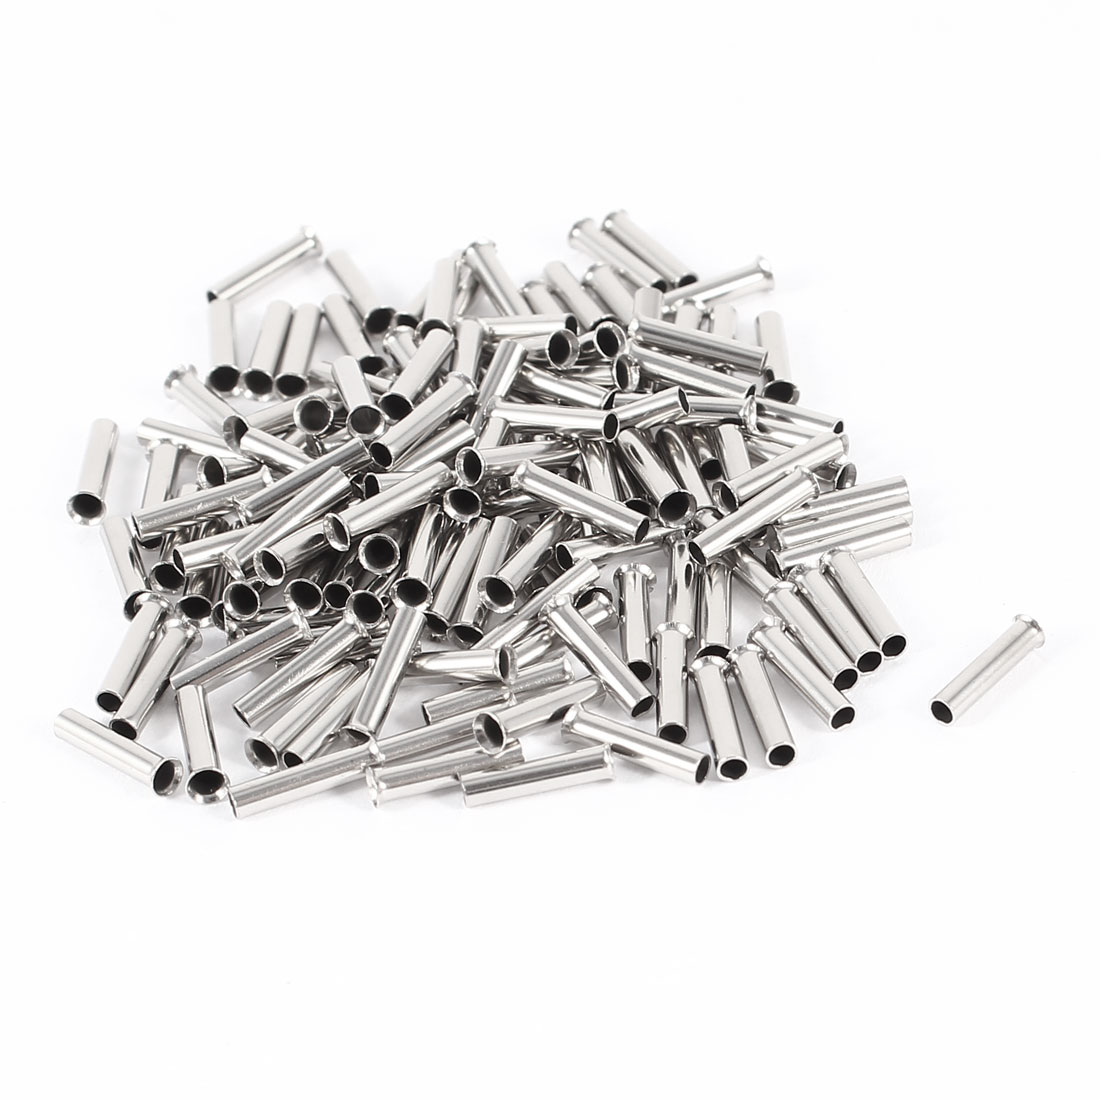 100 Pieces Silver Tone EN1008 Copper A.W.G 18 8mmx2mm Non-Insulated Wire Ferrule